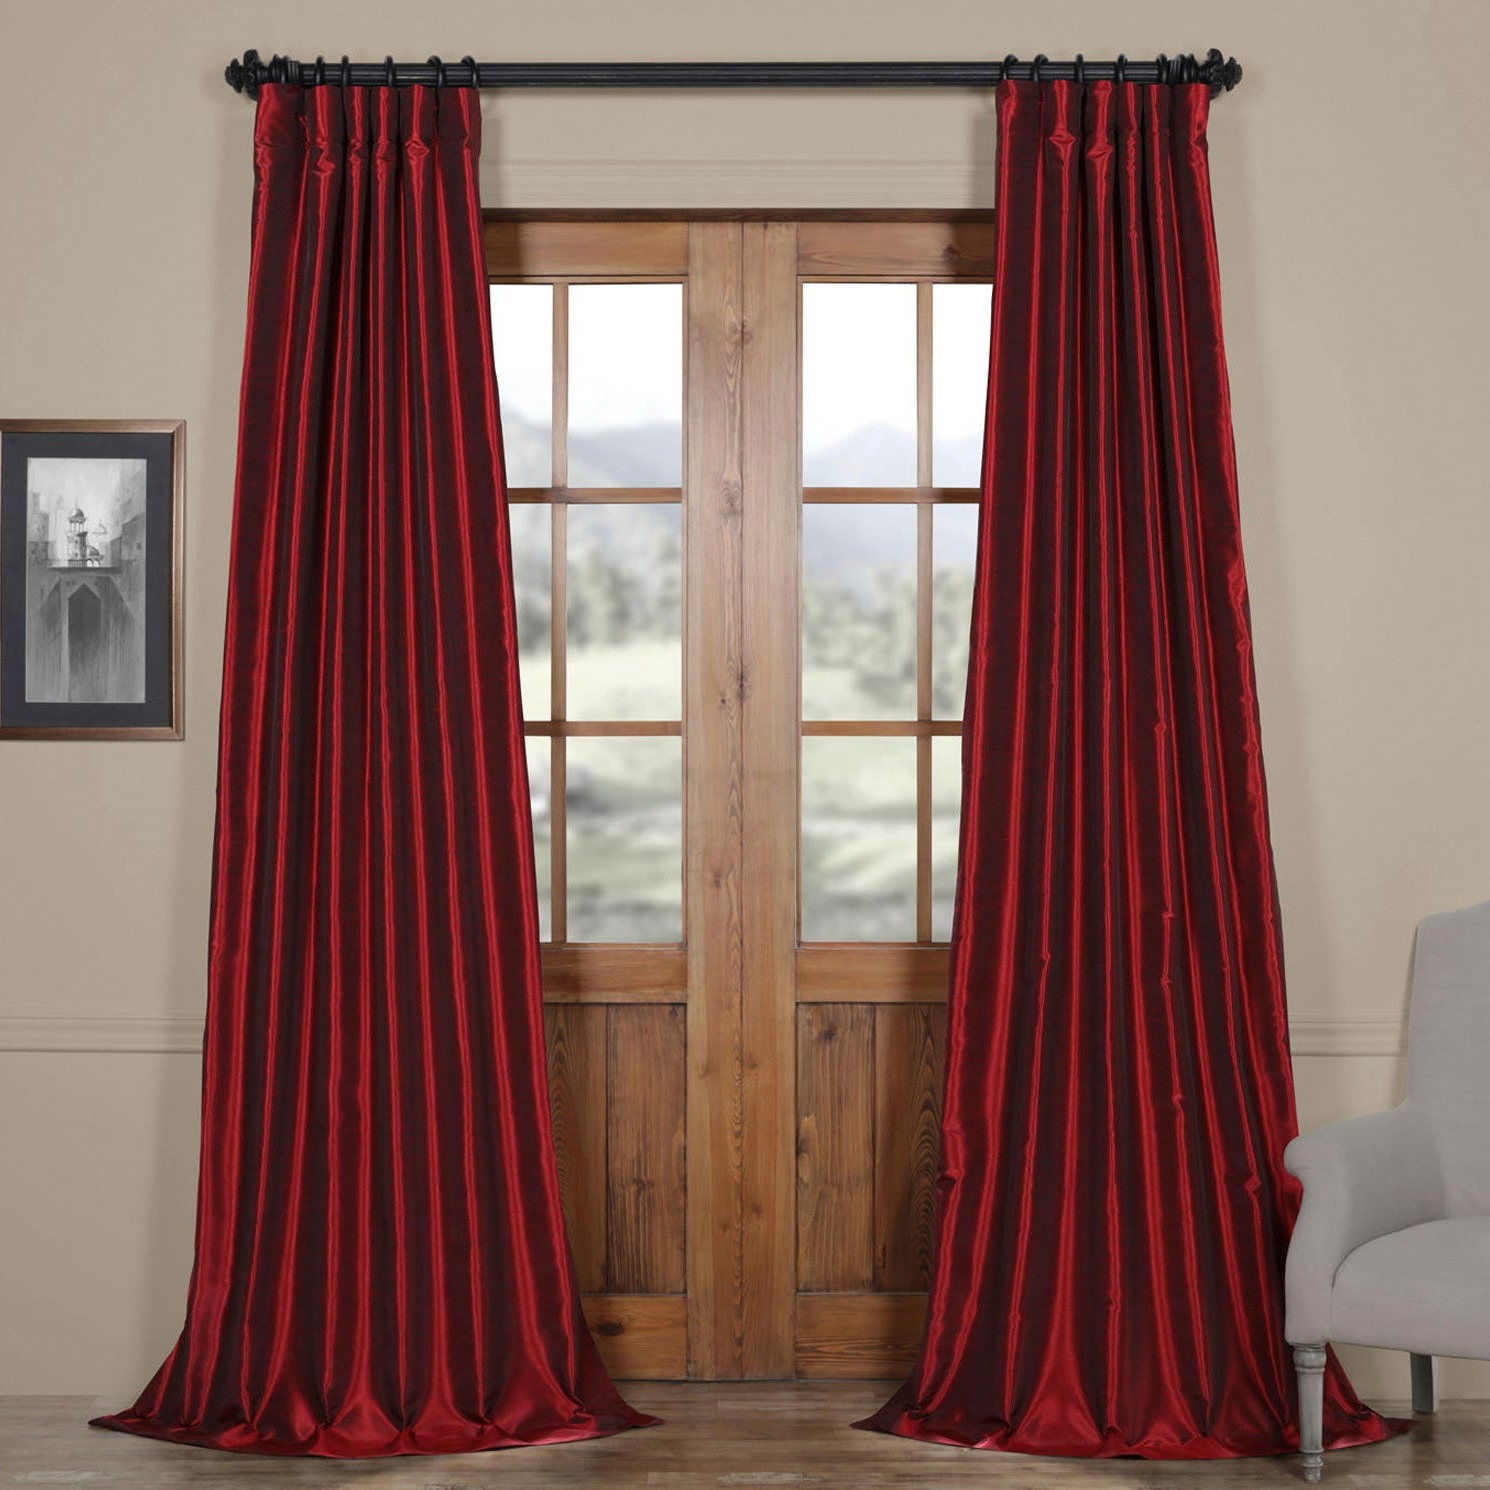 Exclusive Fabrics Ruby Vintage Faux Textured Dupioni Silk 50 Inch Curtain Panel With Trendy Vintage Faux Textured Dupioni Silk Curtain Panels (View 3 of 20)